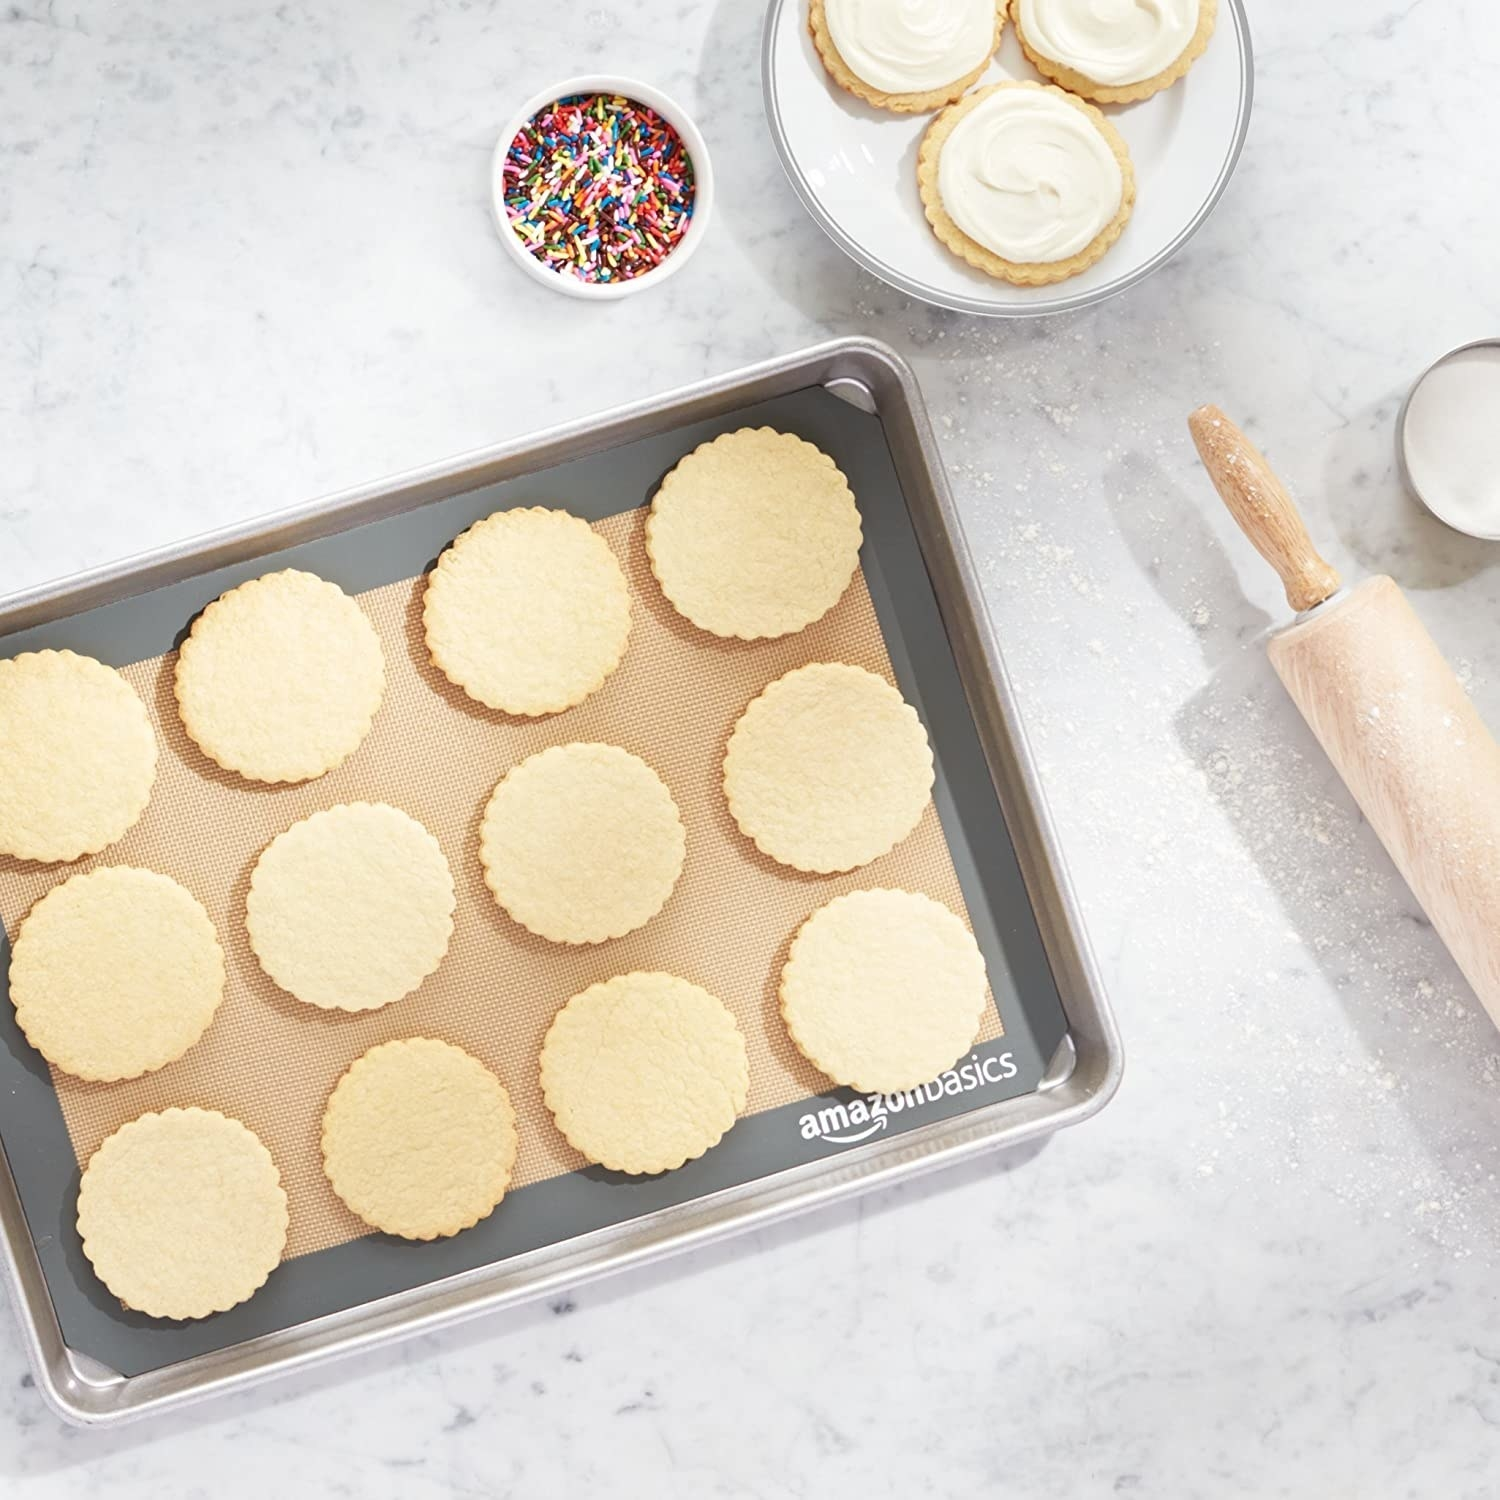 Cookies kept on top of the baking mat on a baking tray